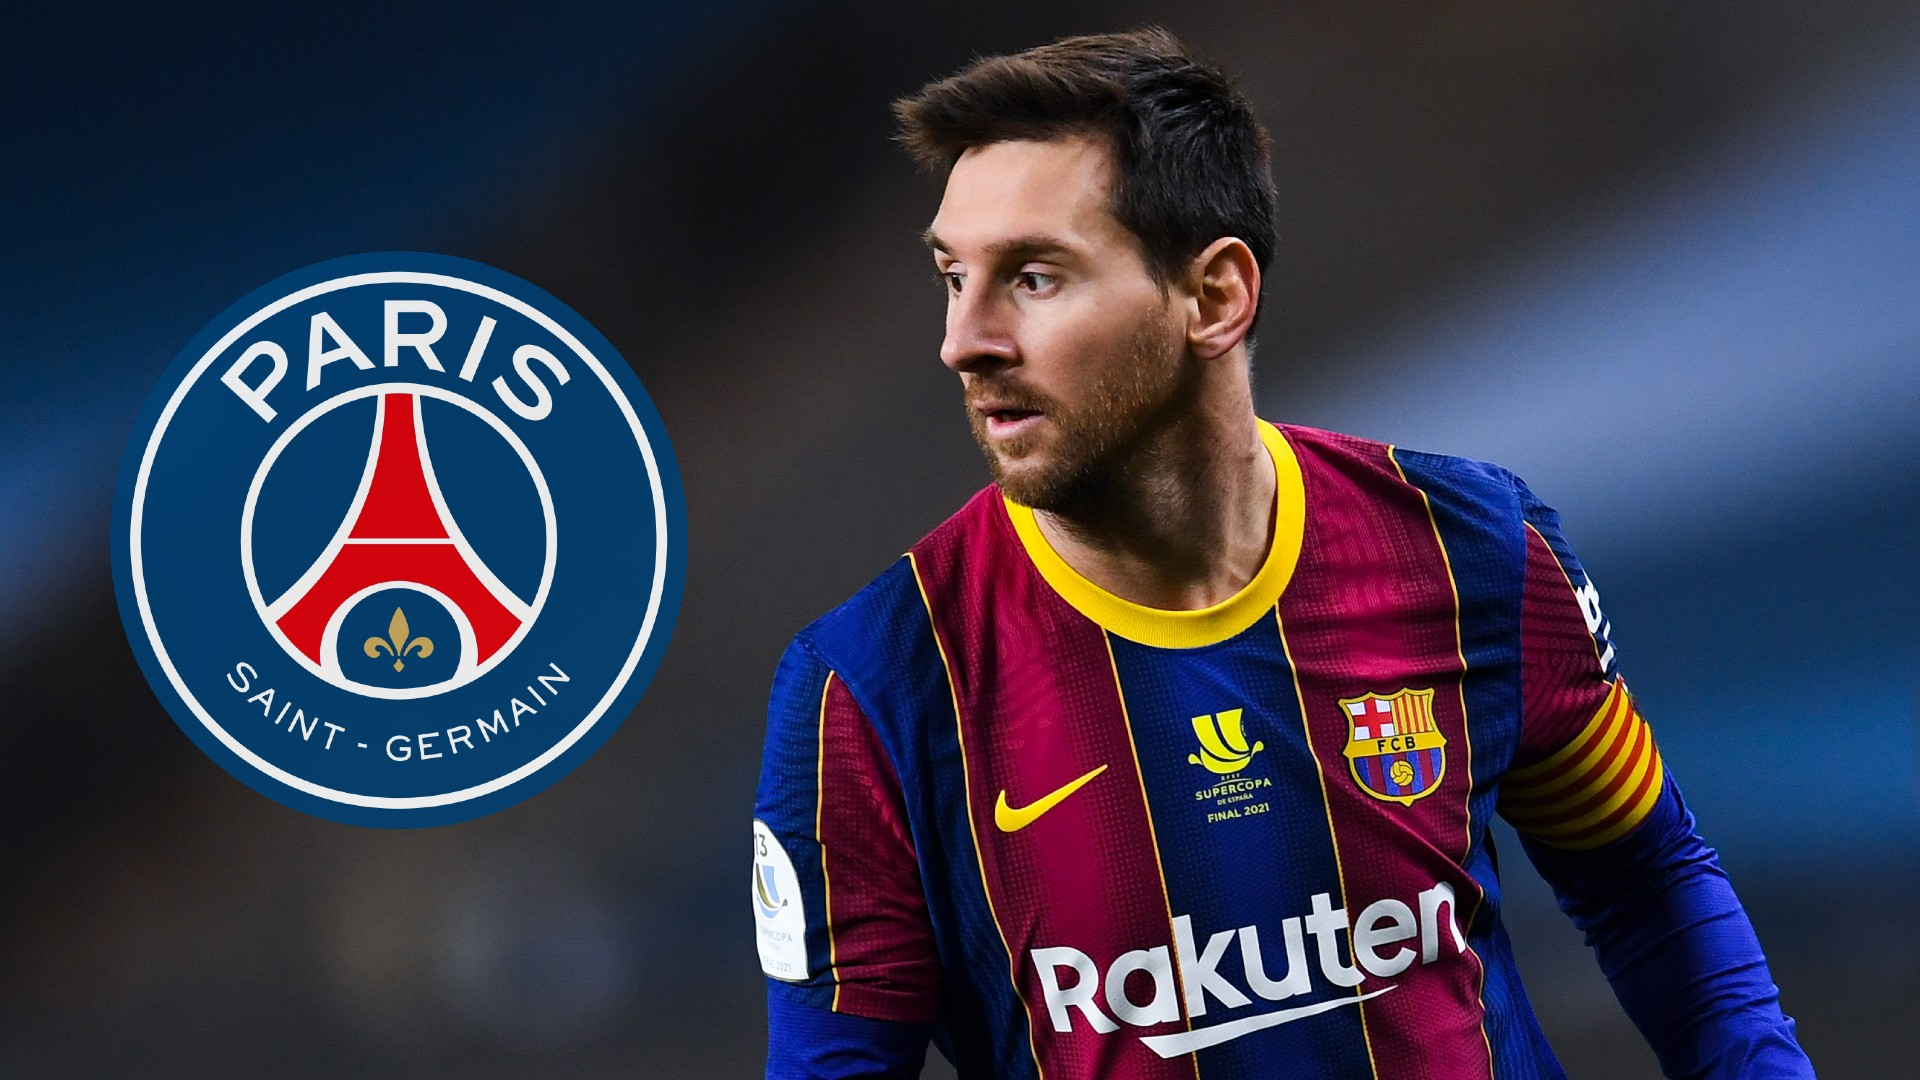 Messi to PSG: Herrera doubts French champions could sign Barcelona star due to FFP